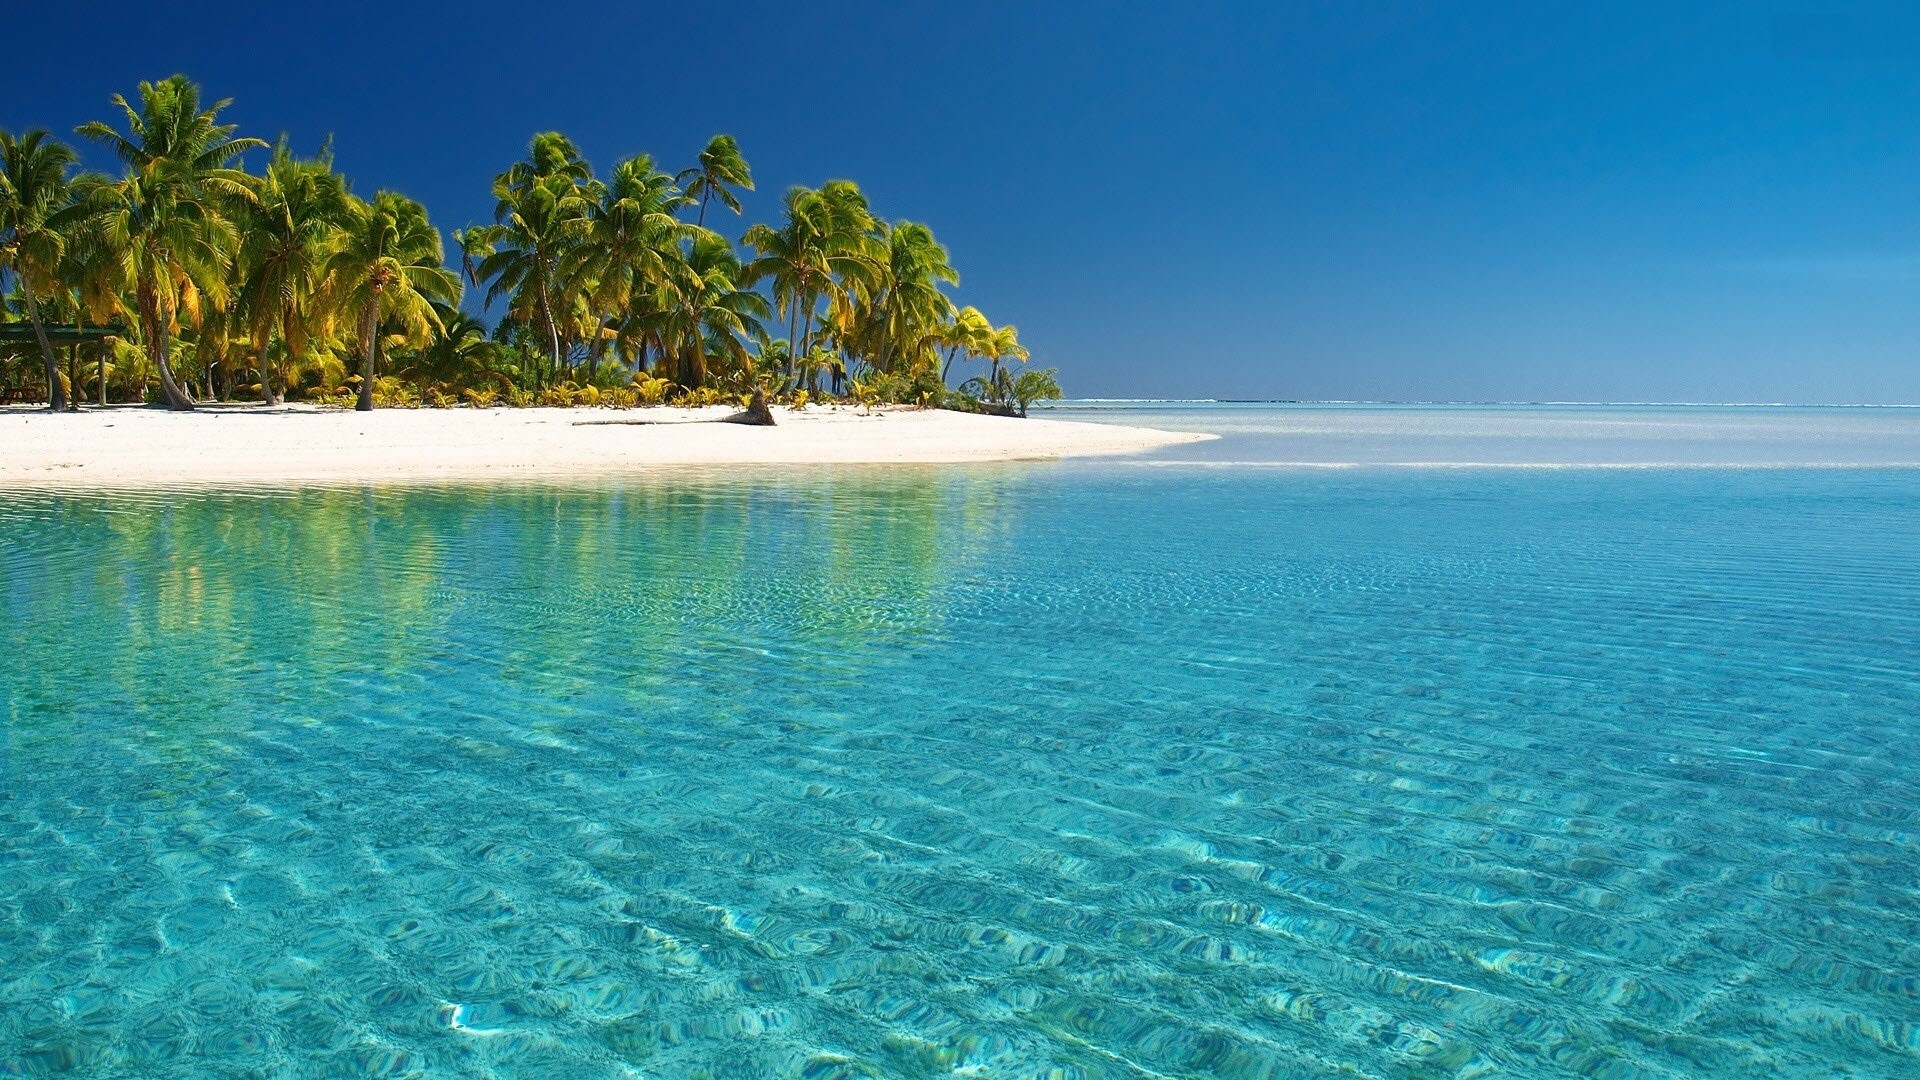 Tropical Beach Pictures For Desktop Background Wallpaper 1920x1080